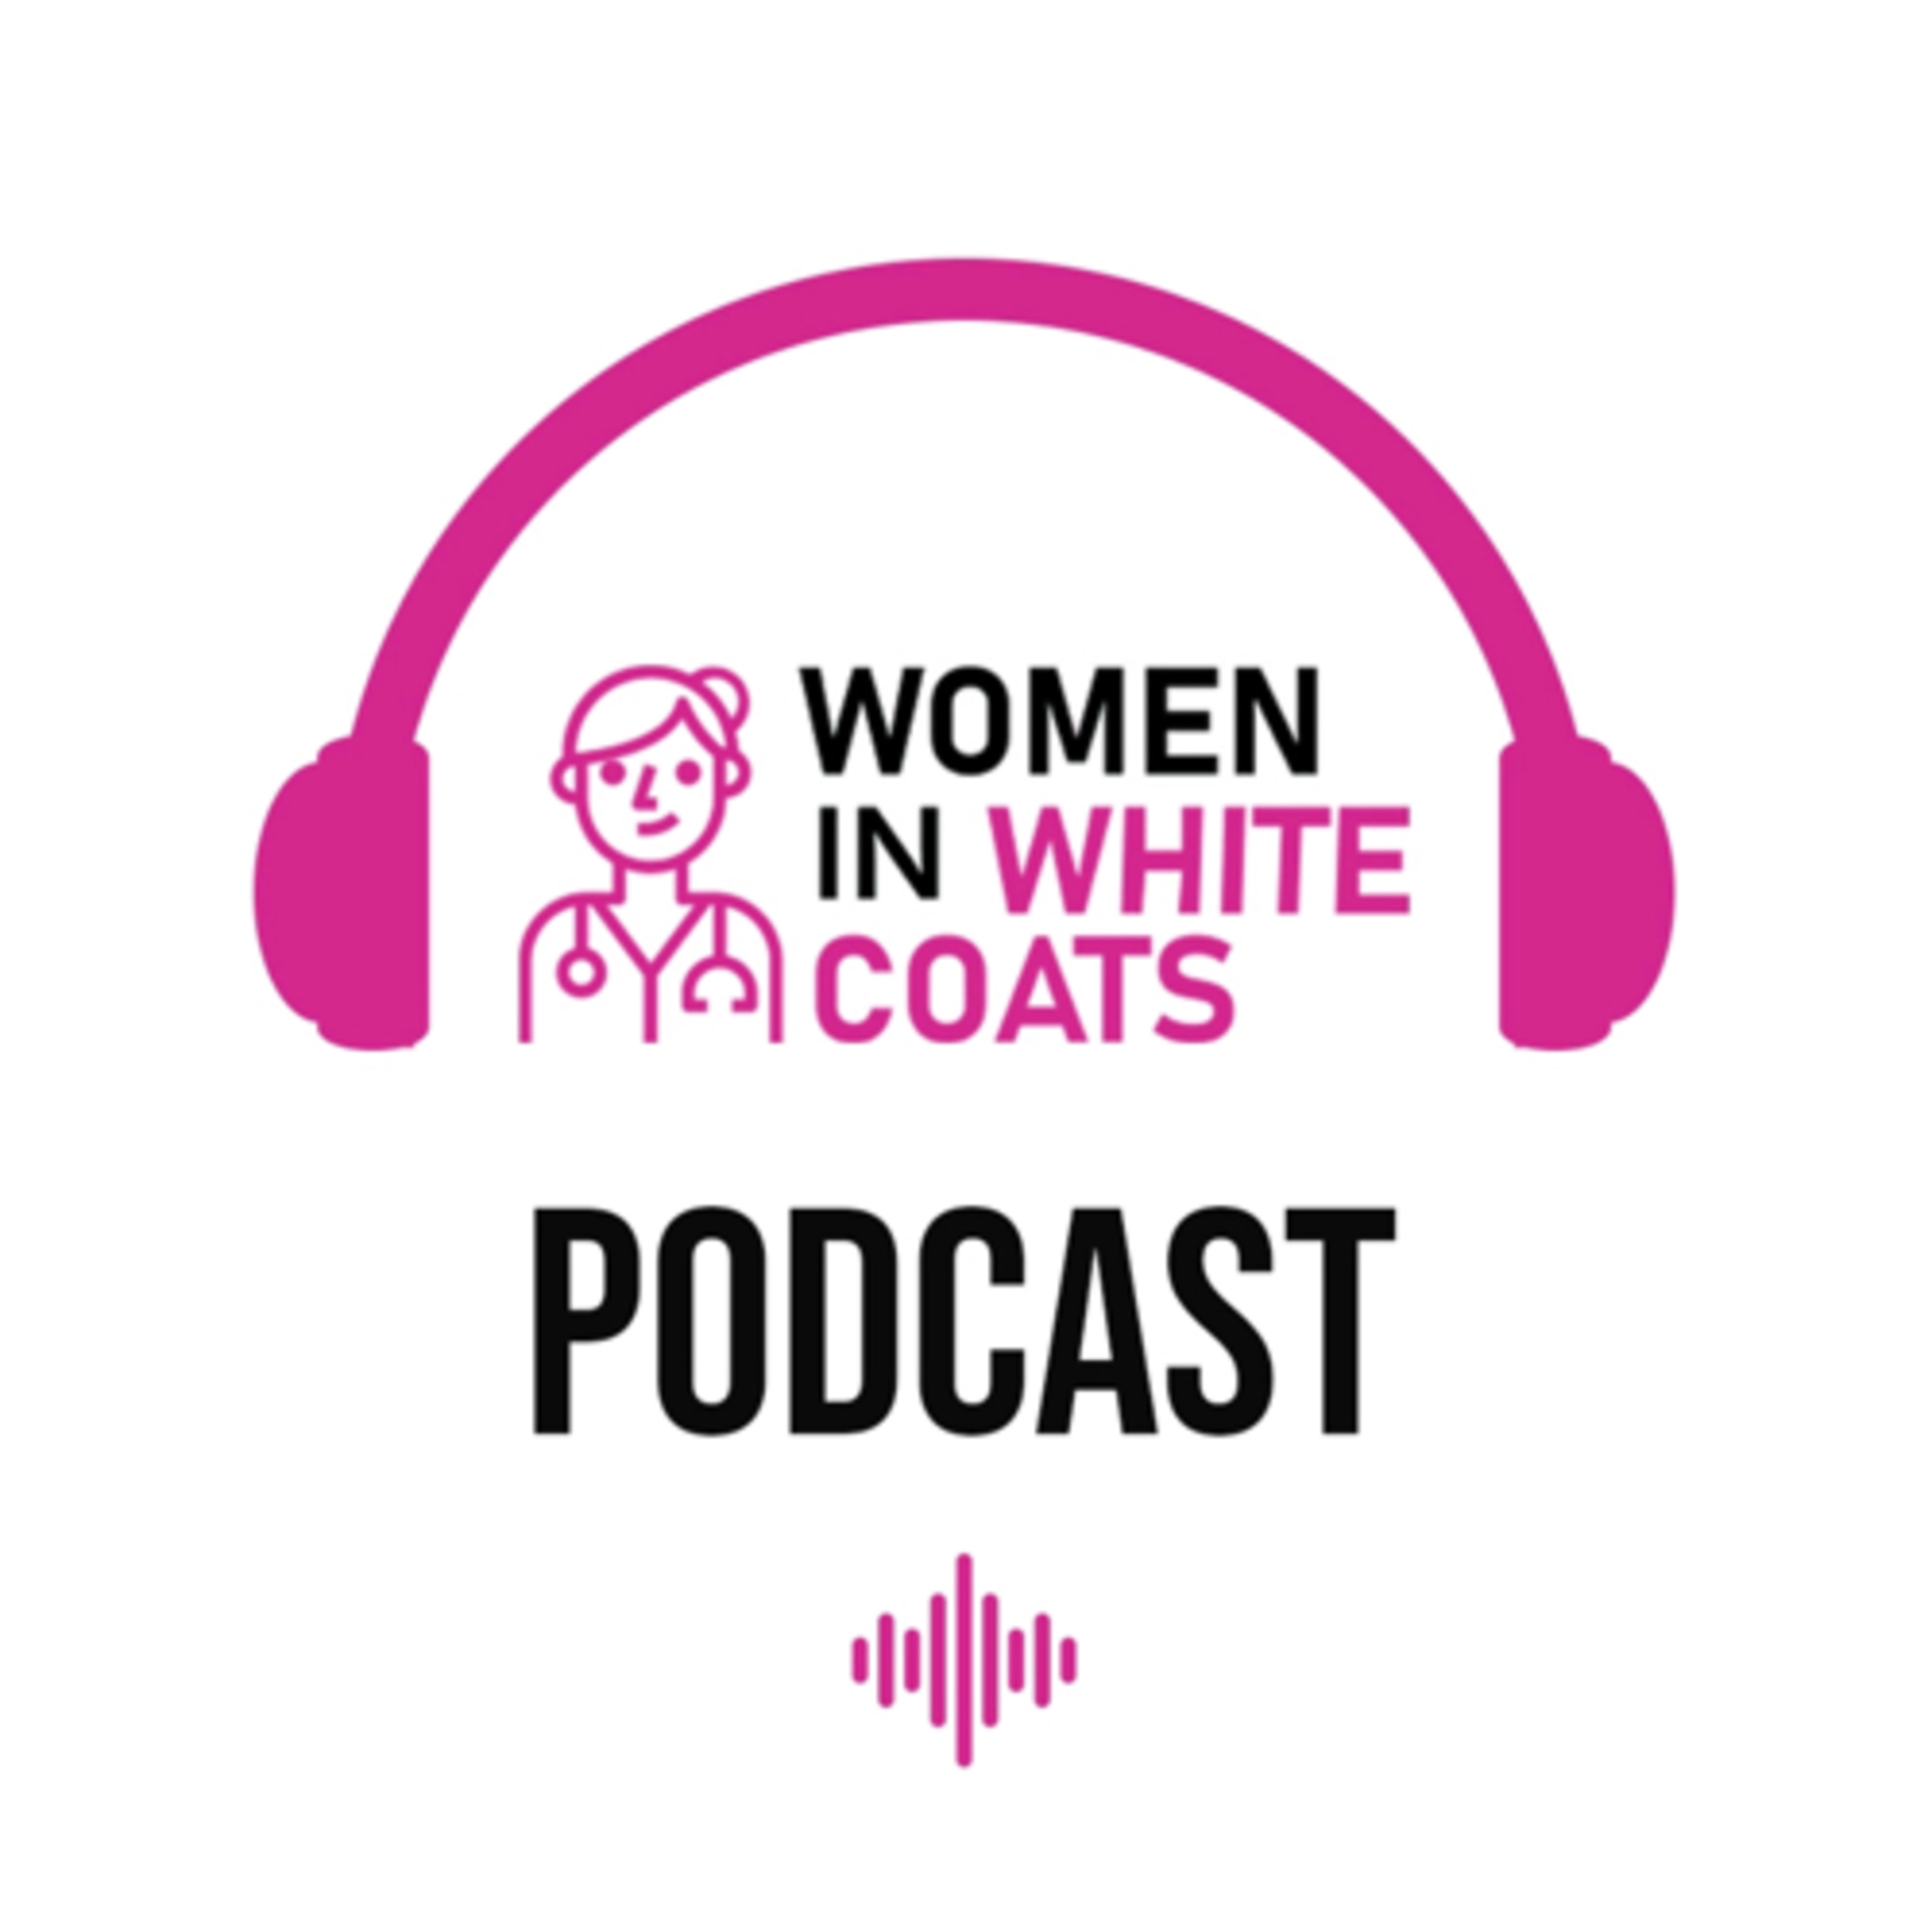 Women in White Coats Podcast